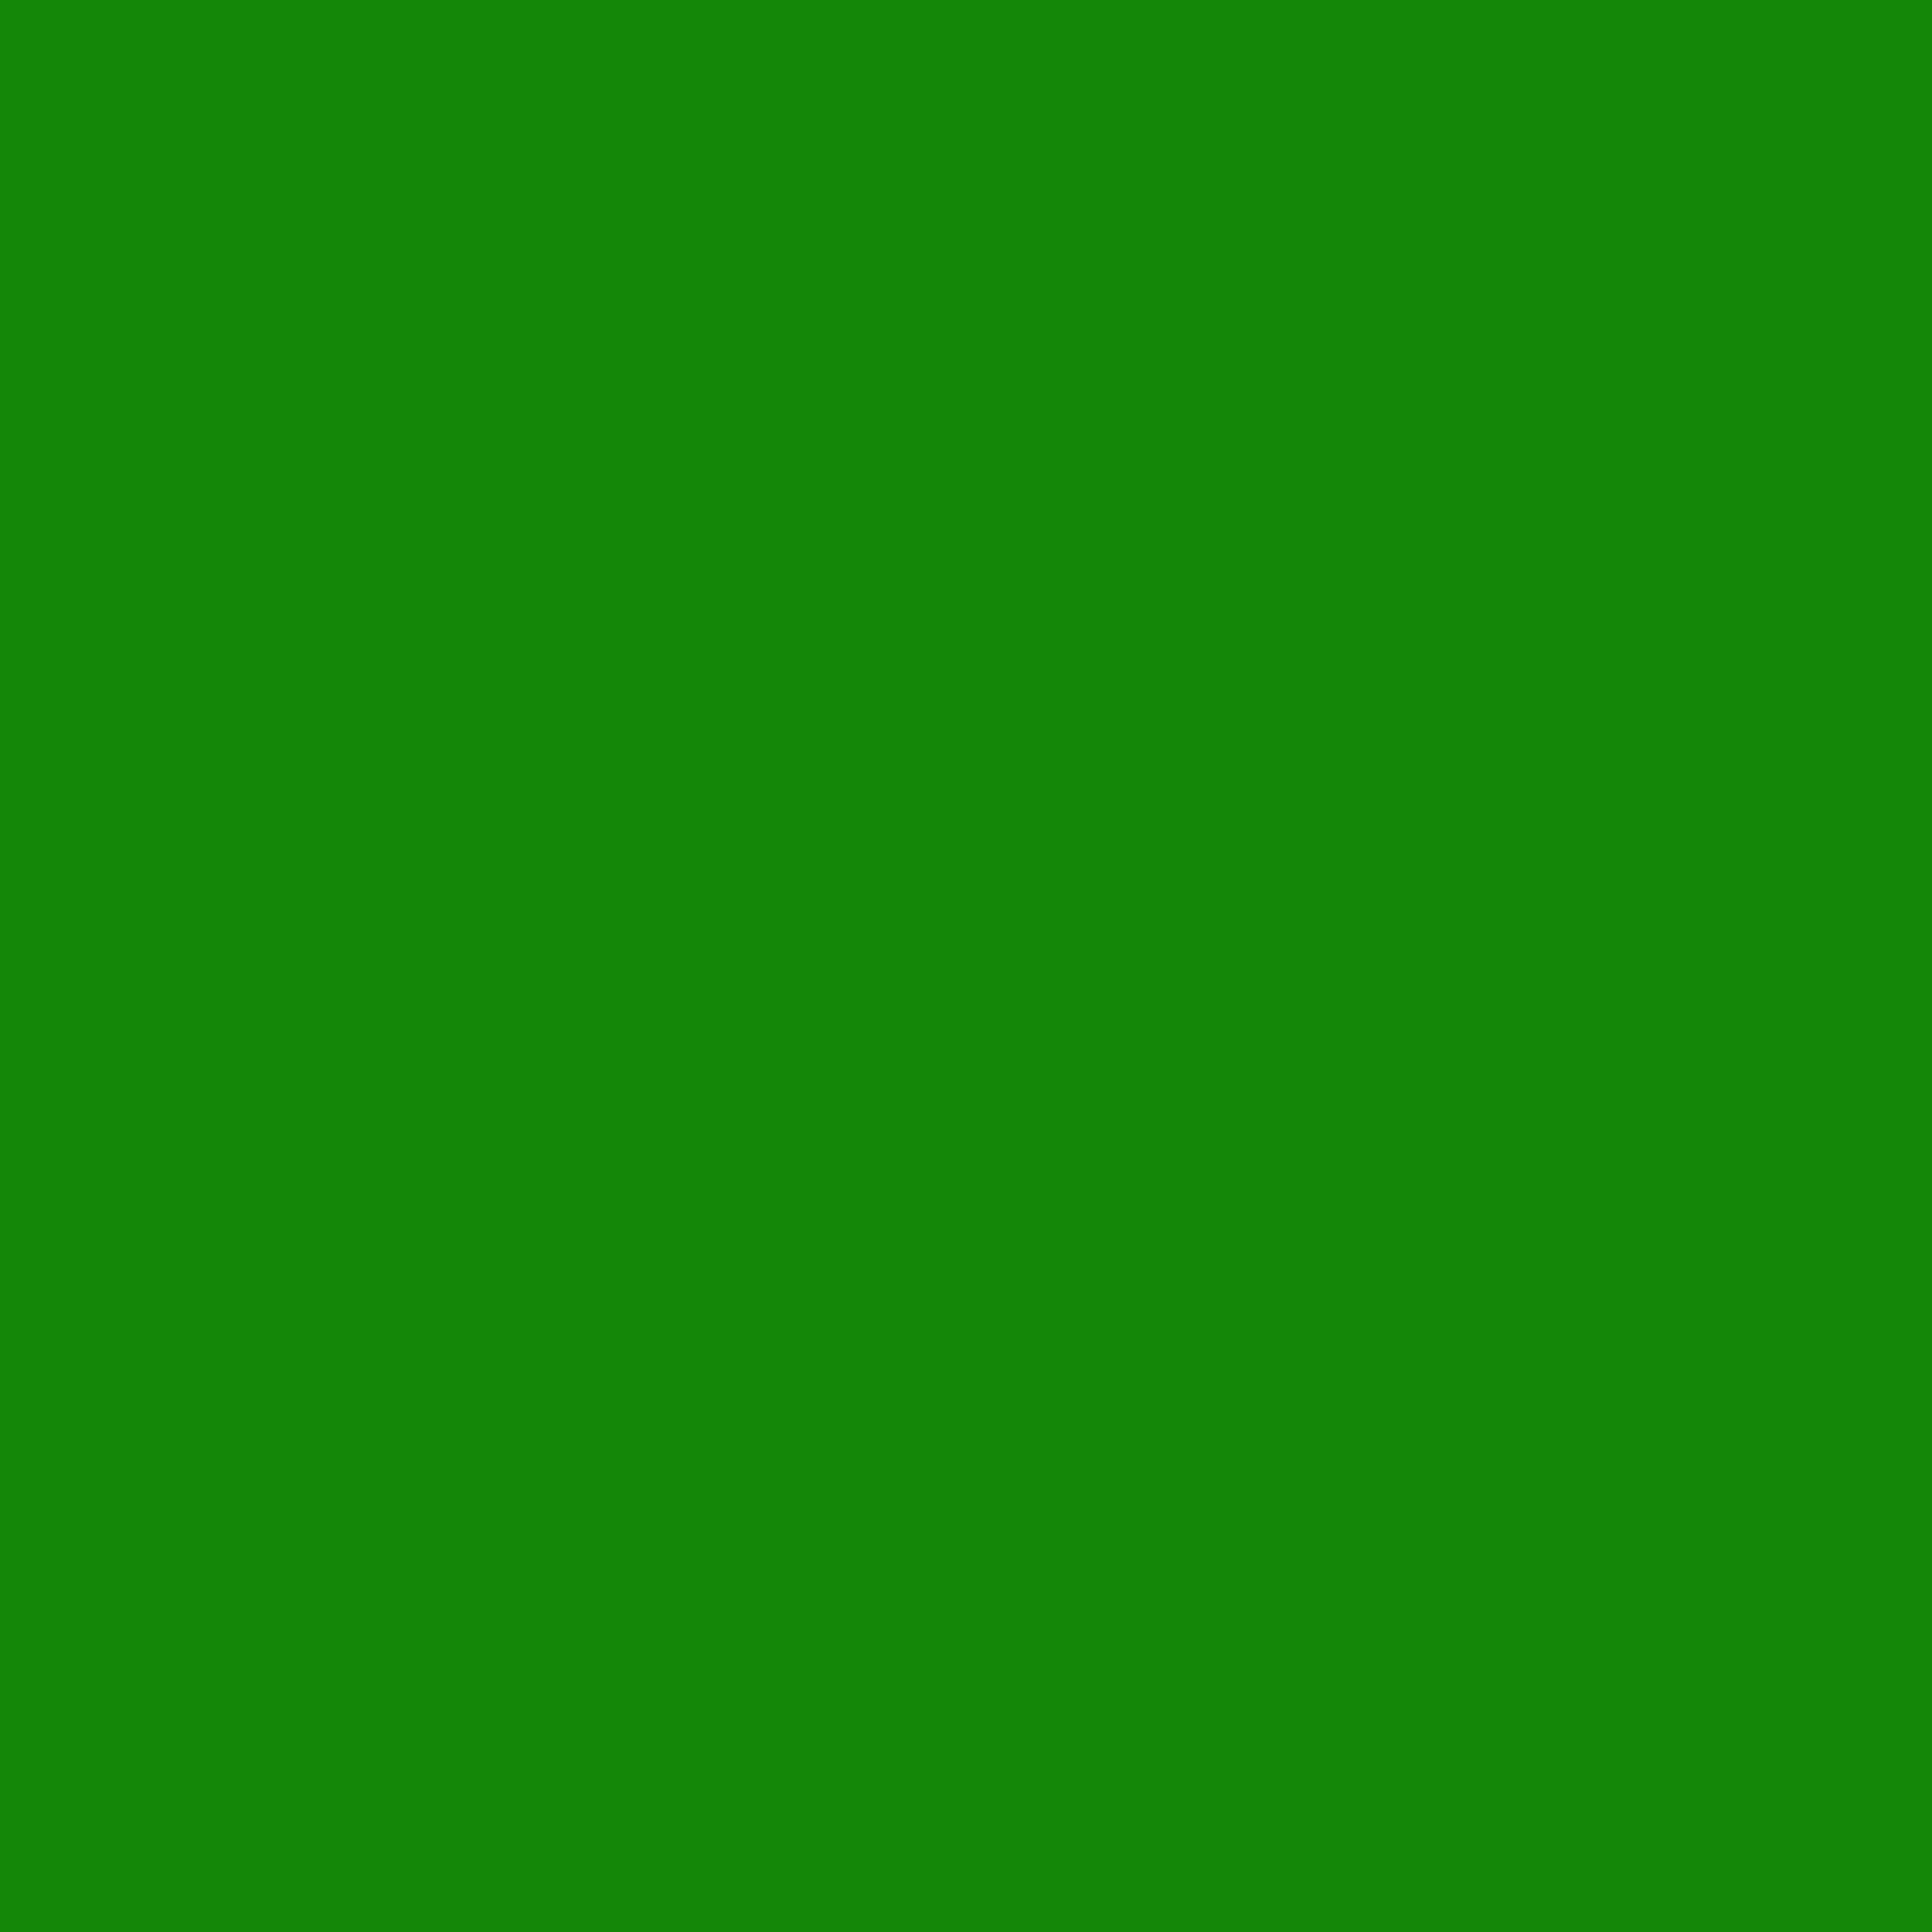 3600x3600 India Green Solid Color Background